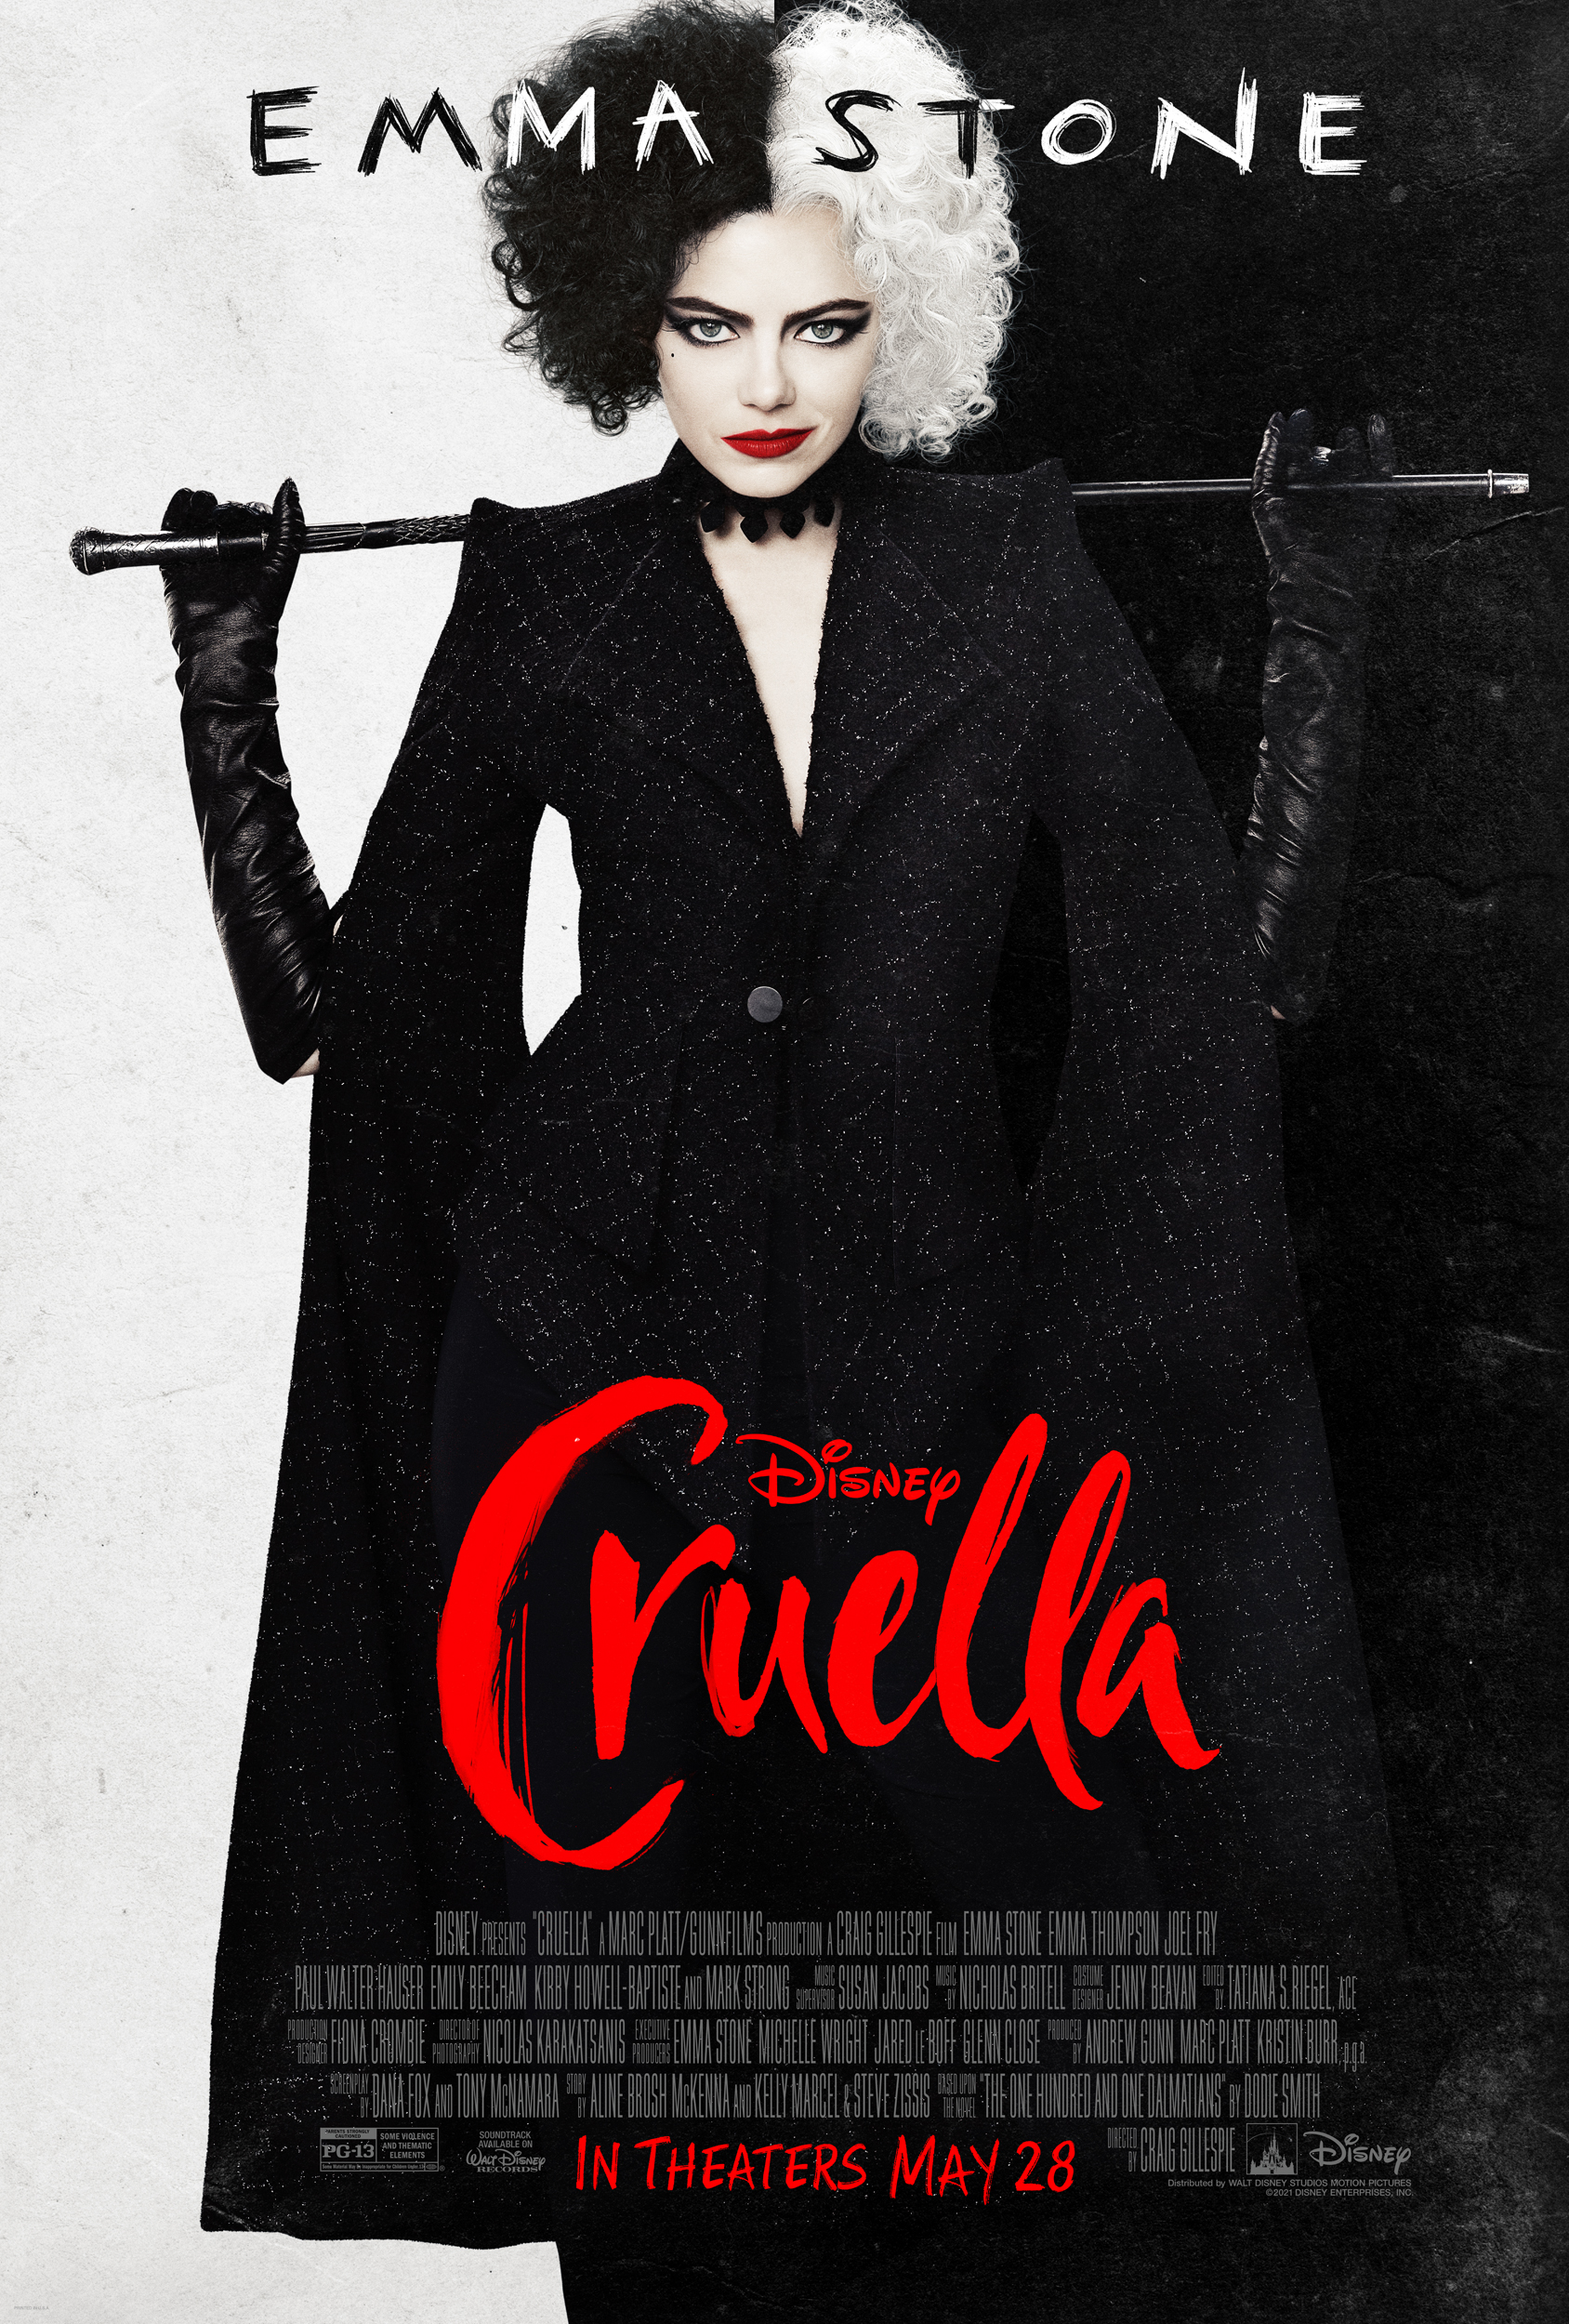 Movie poster image for CRUELLA